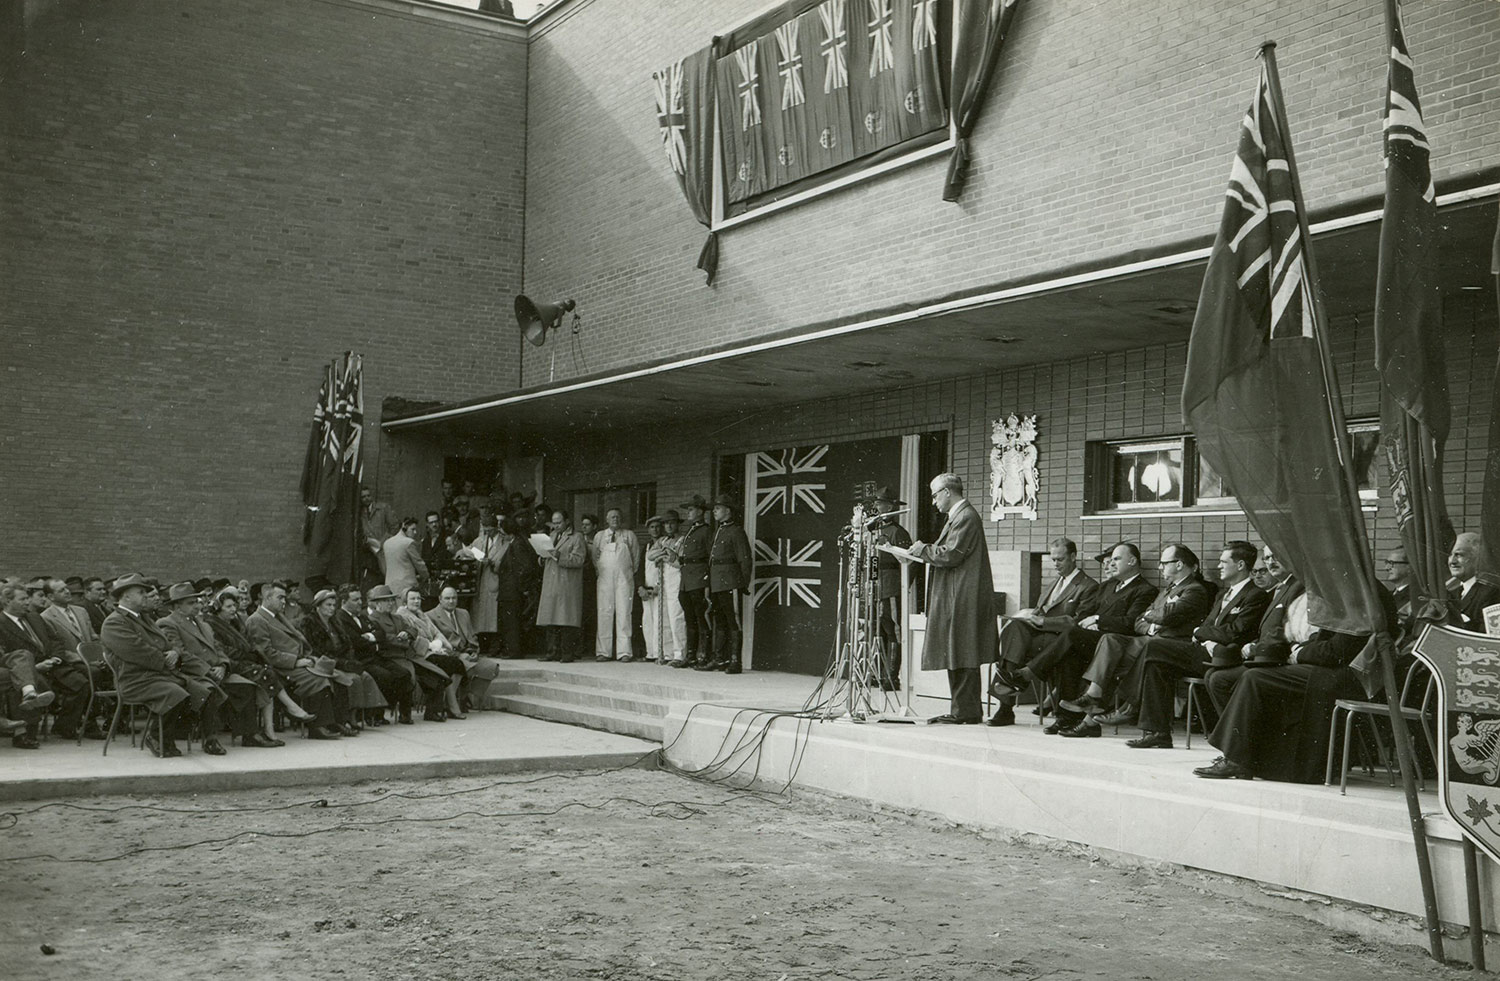 Inauguration of the NFB studio in Montreal, 1956